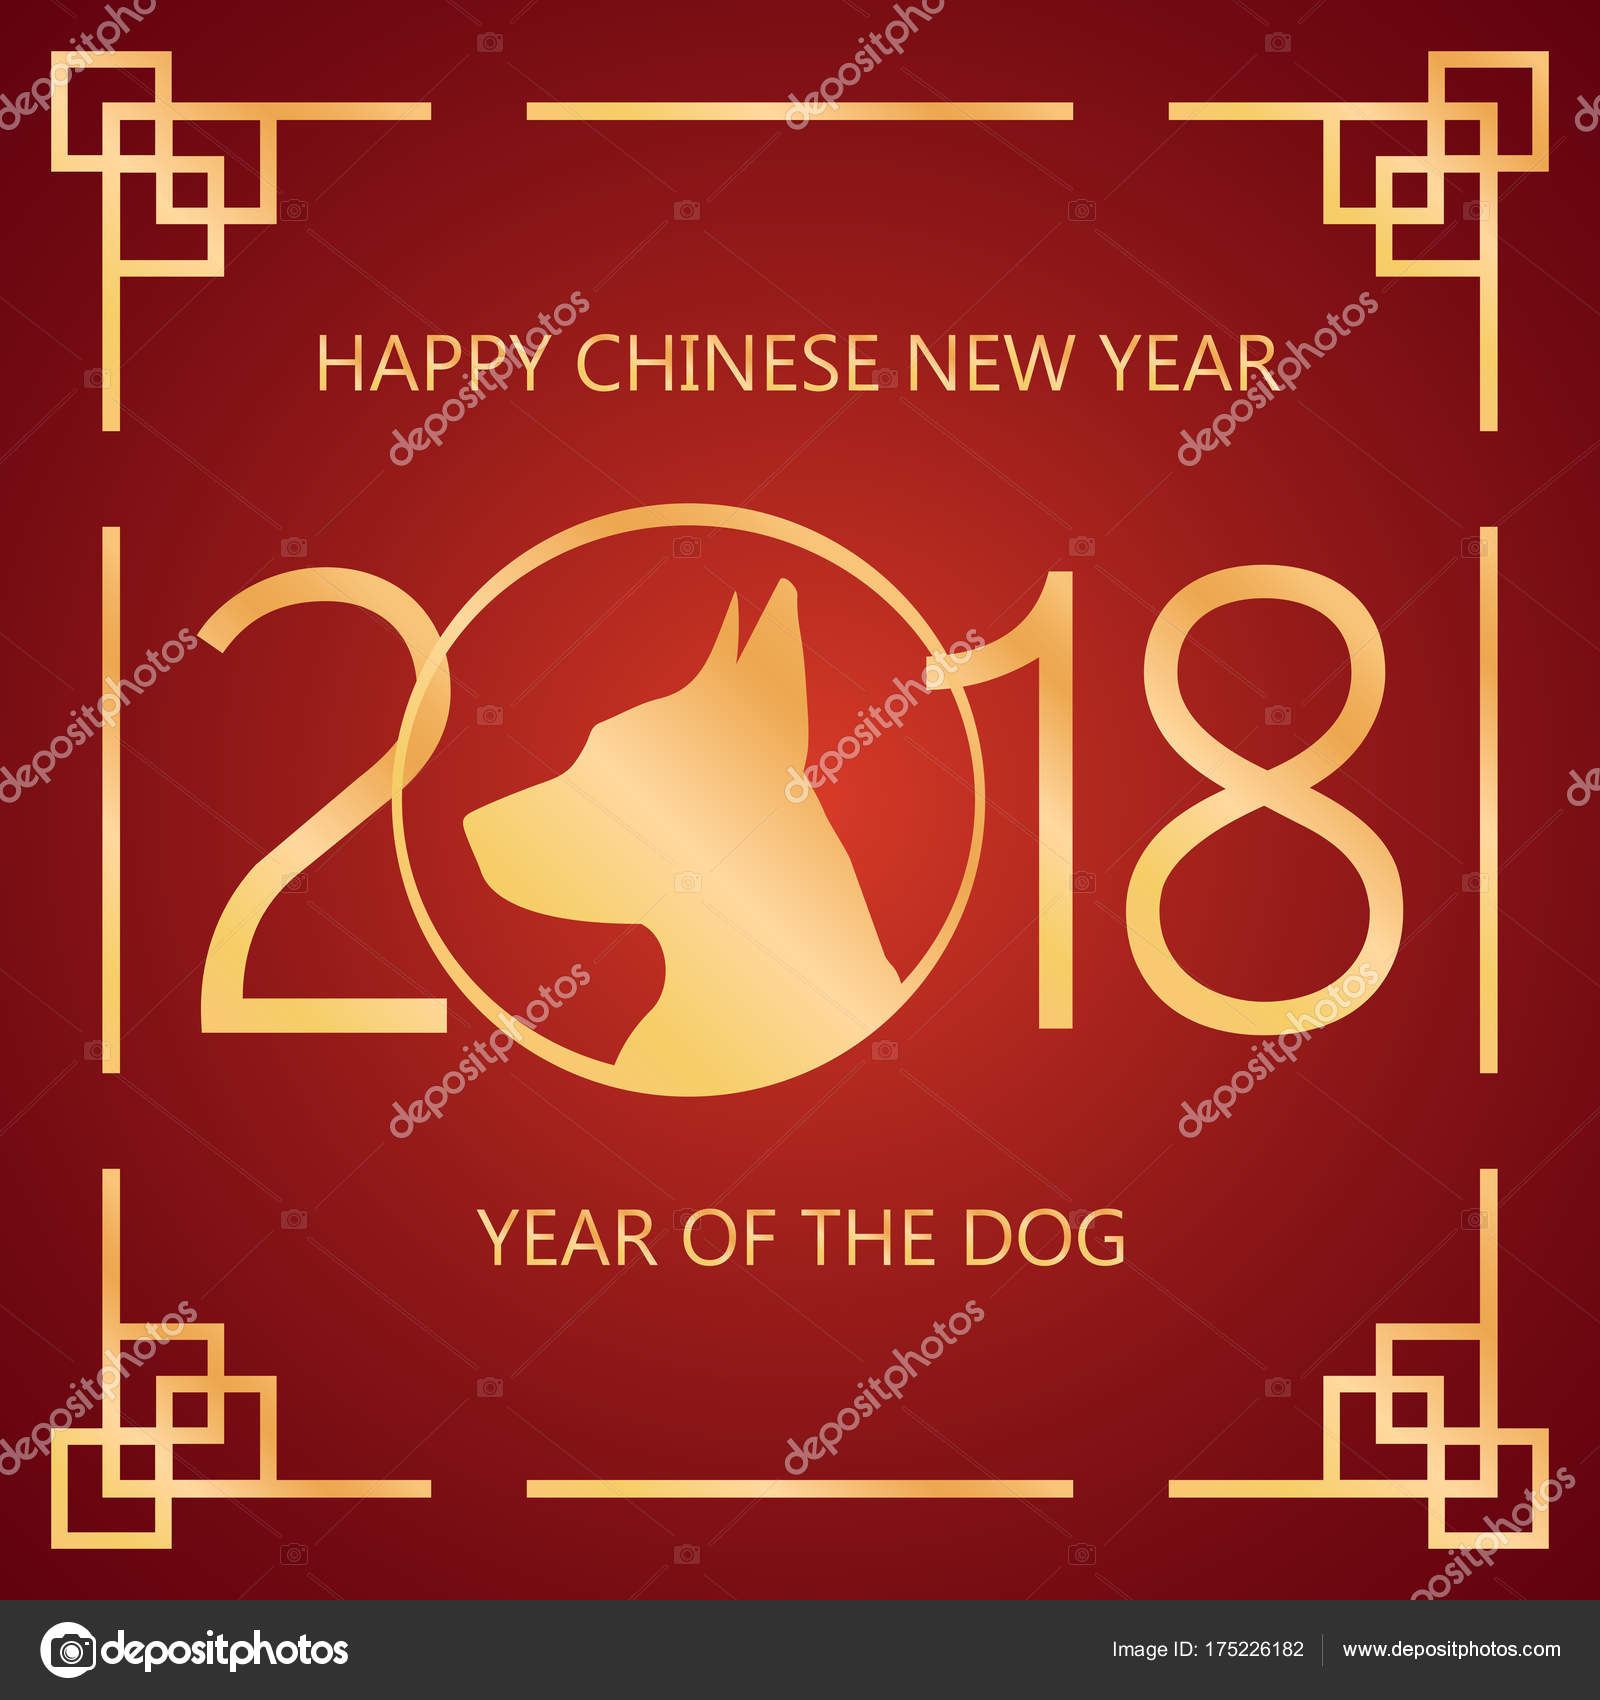 Chinese new year 2018 festive vector card design with dog zodiac chinese new year 2018 festive vector card design with dog zodiac symbol of year 2018 buycottarizona Images